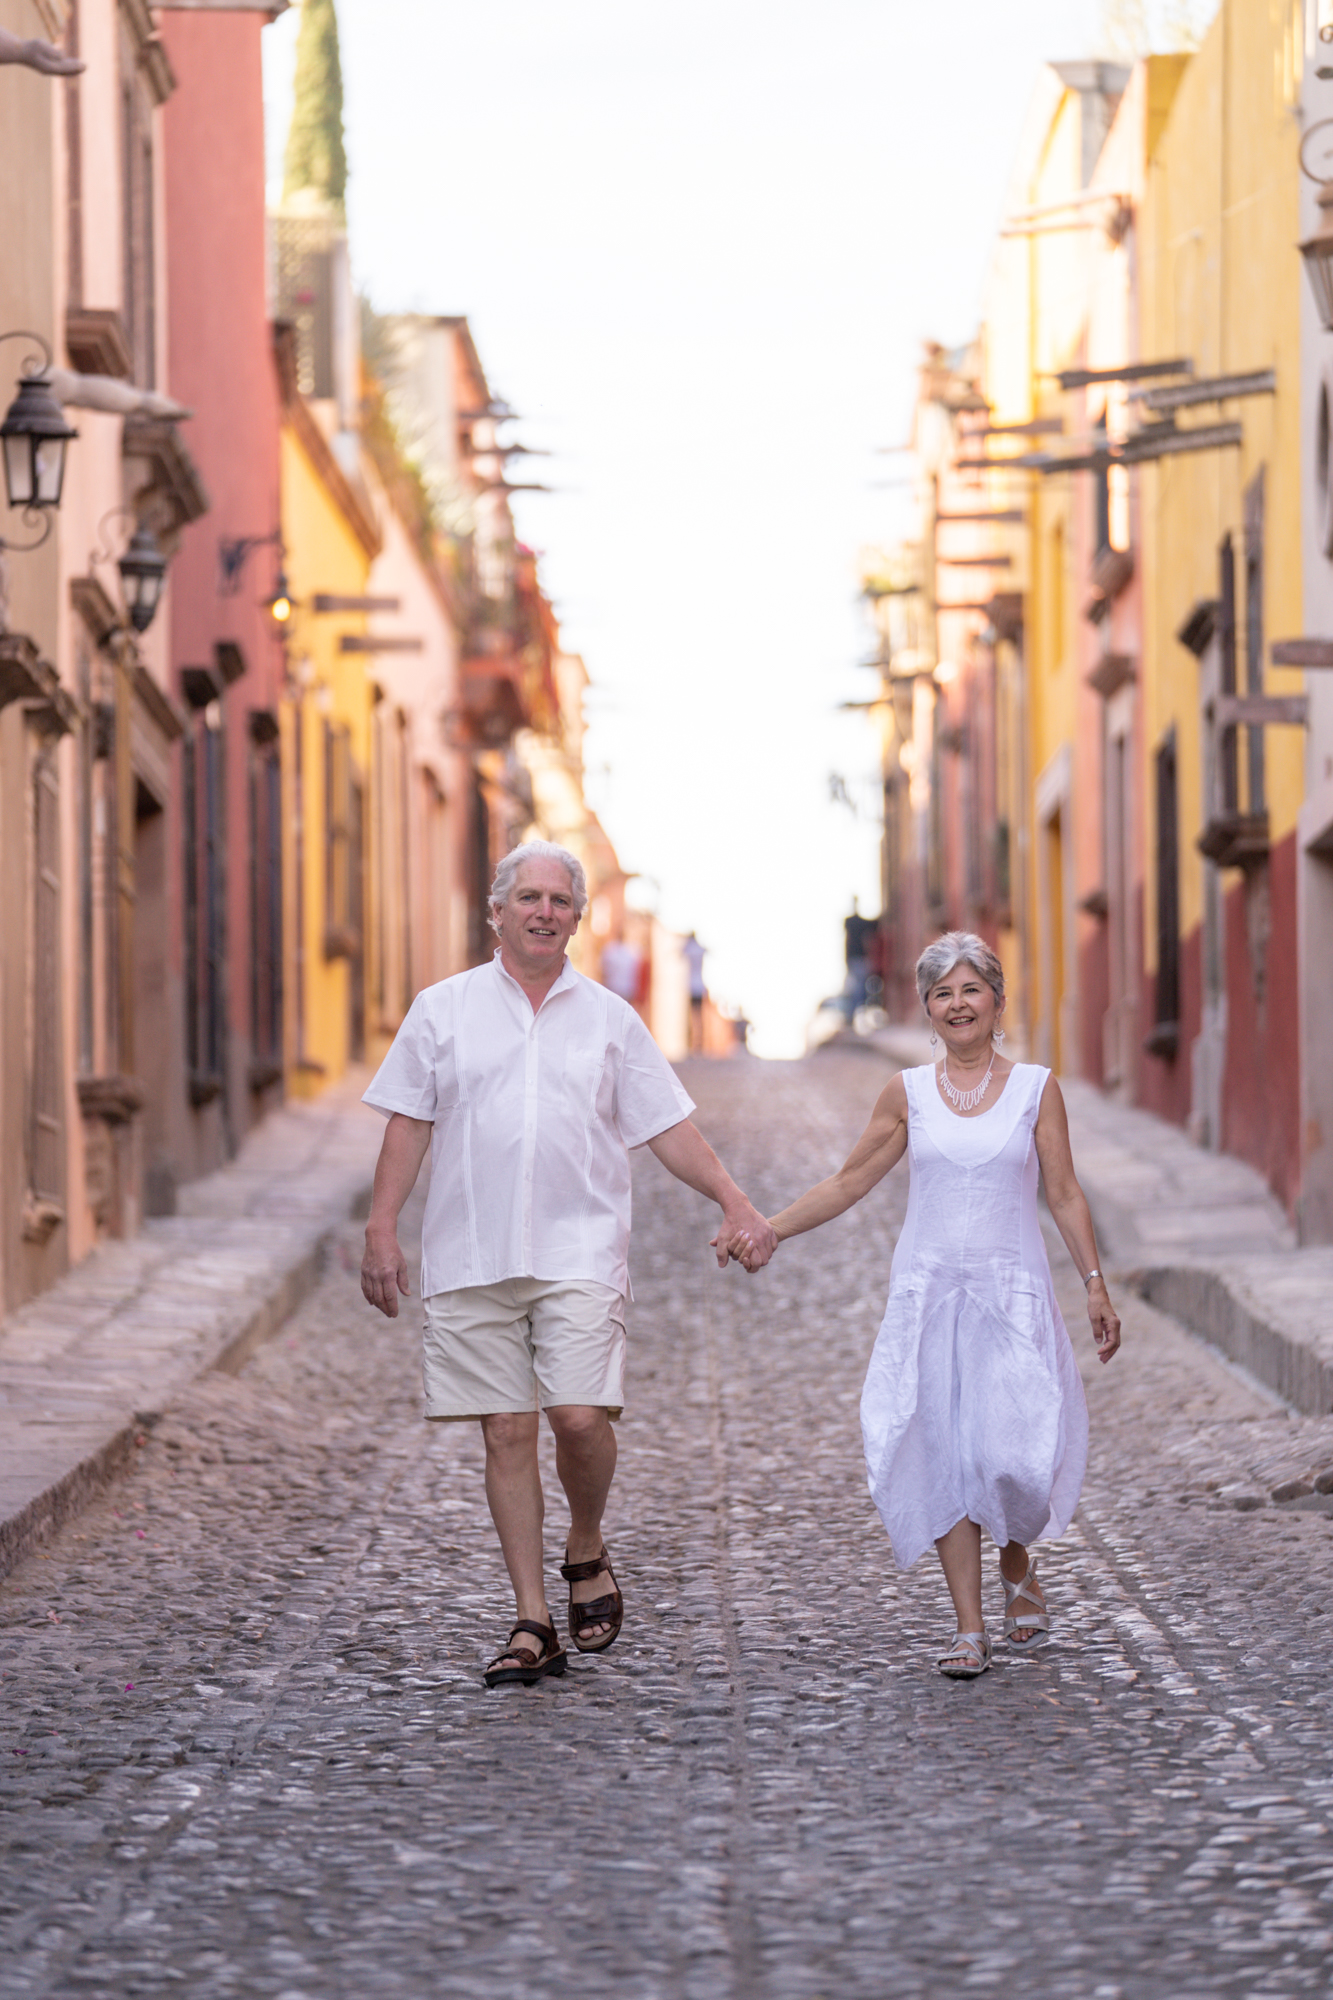 Photoshoot session in San Miguel de Allende with Suzanne and Leo-17.jpg